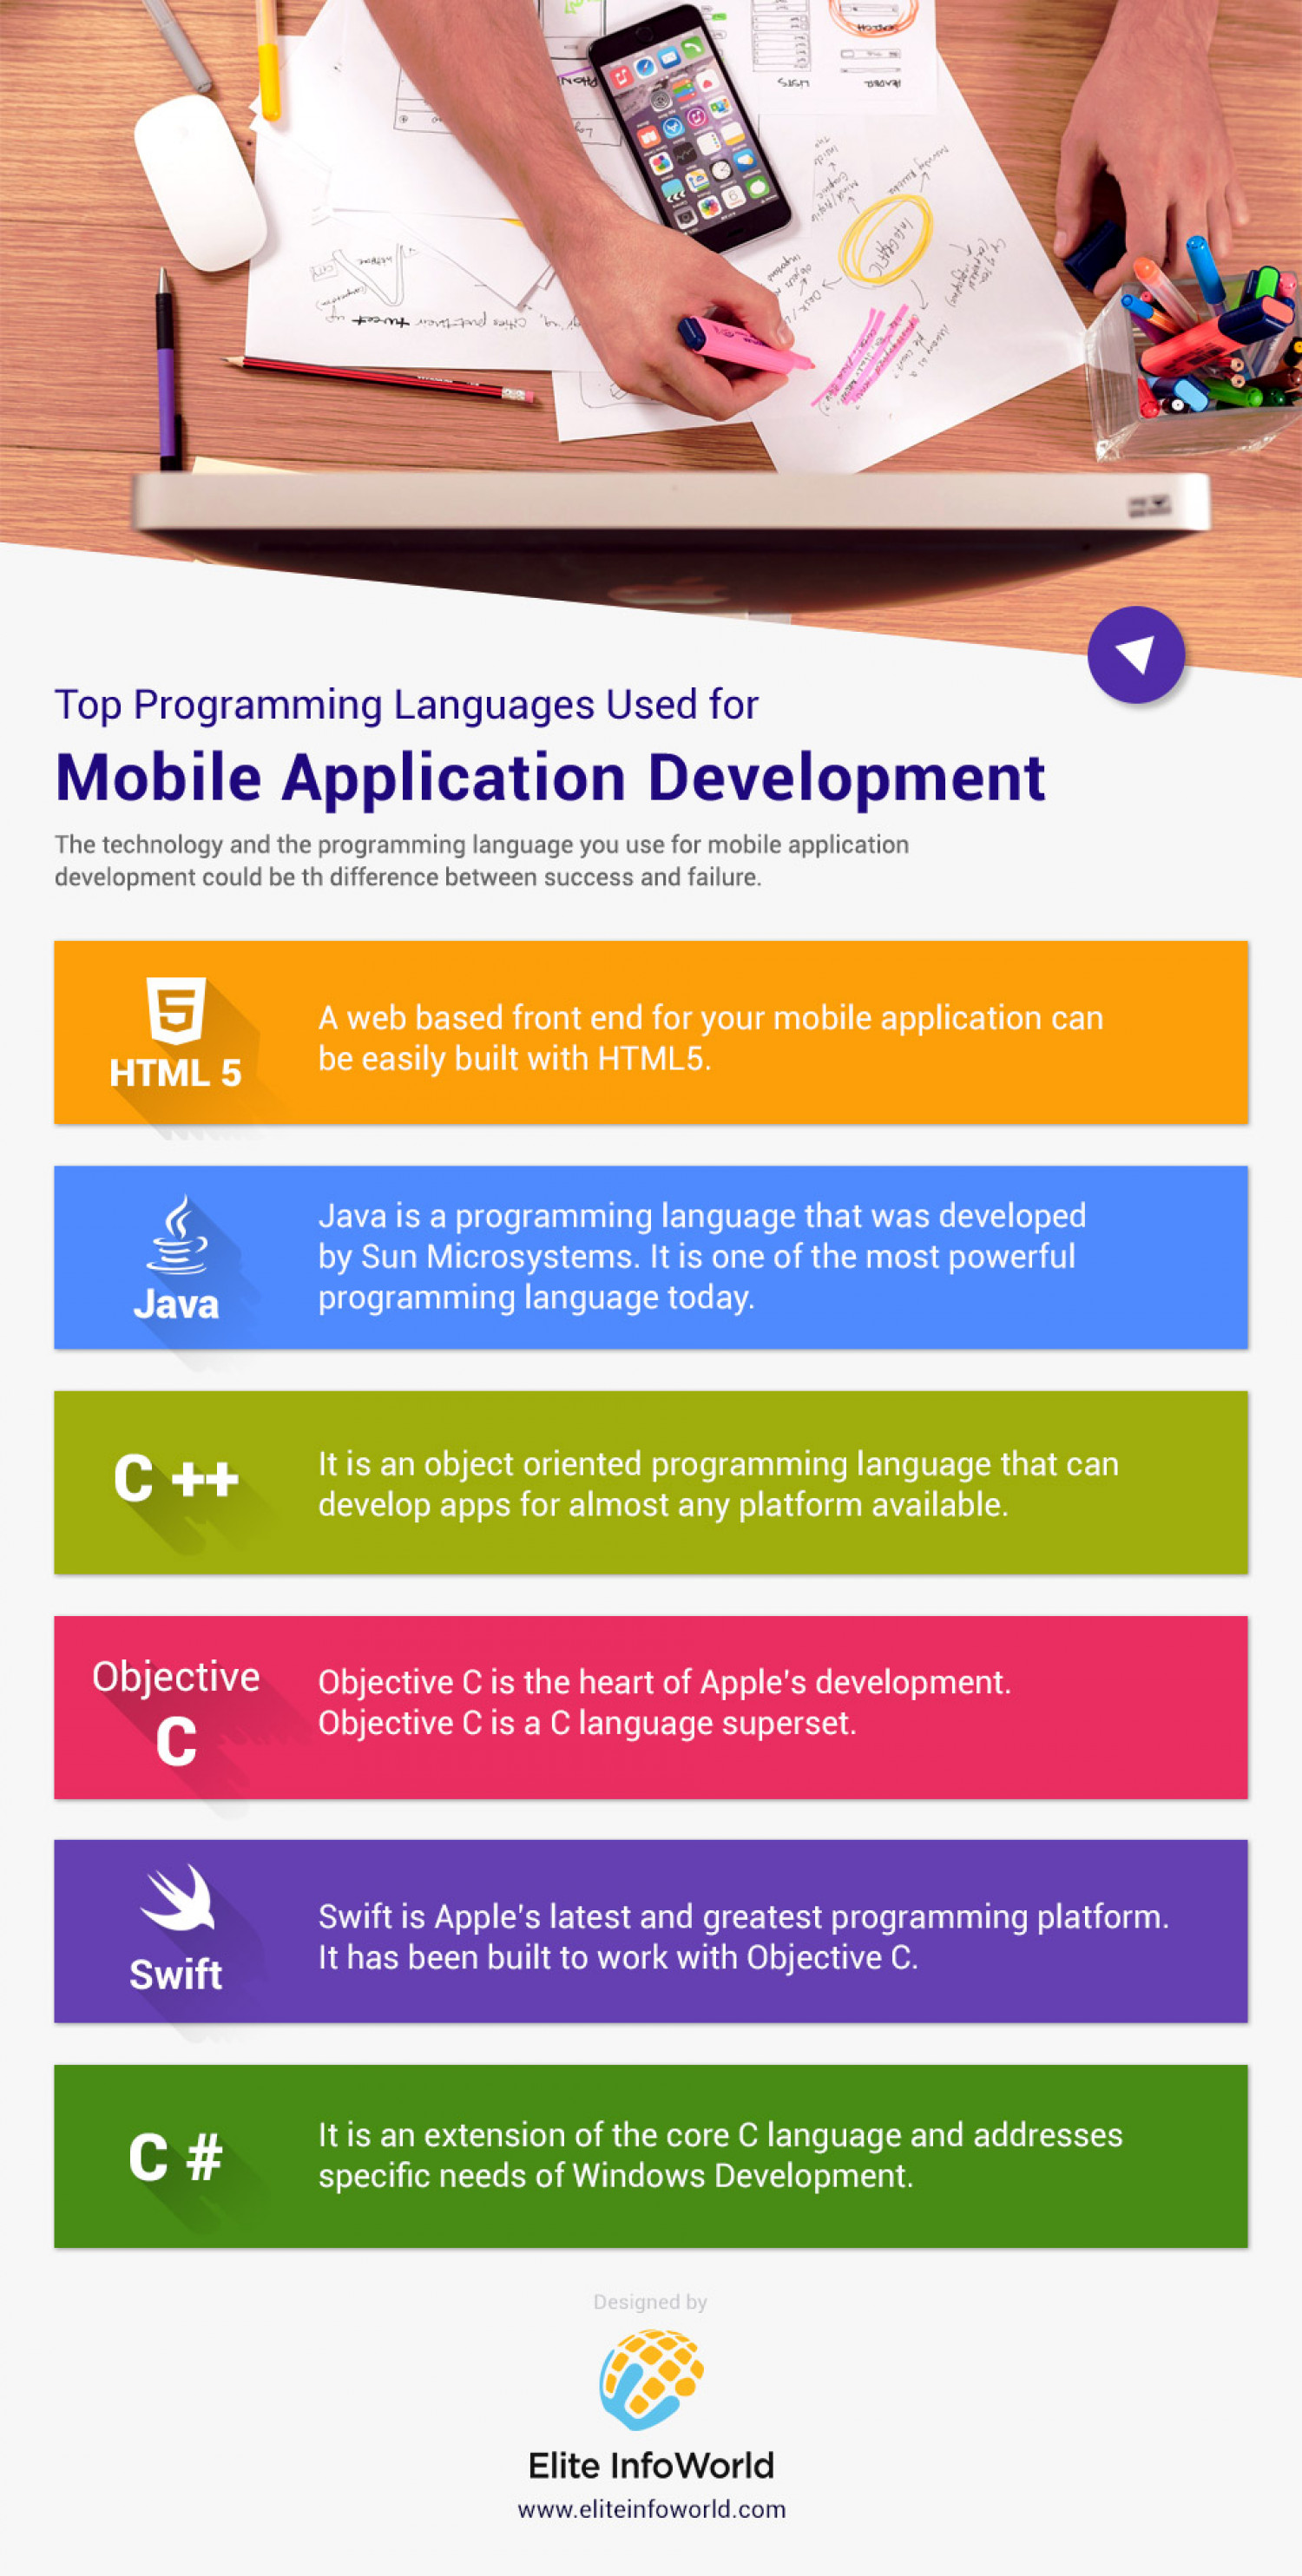 Most Popular Programming Languages Used for Mobile Apps Development [INFOGRAPHIC] Infographic